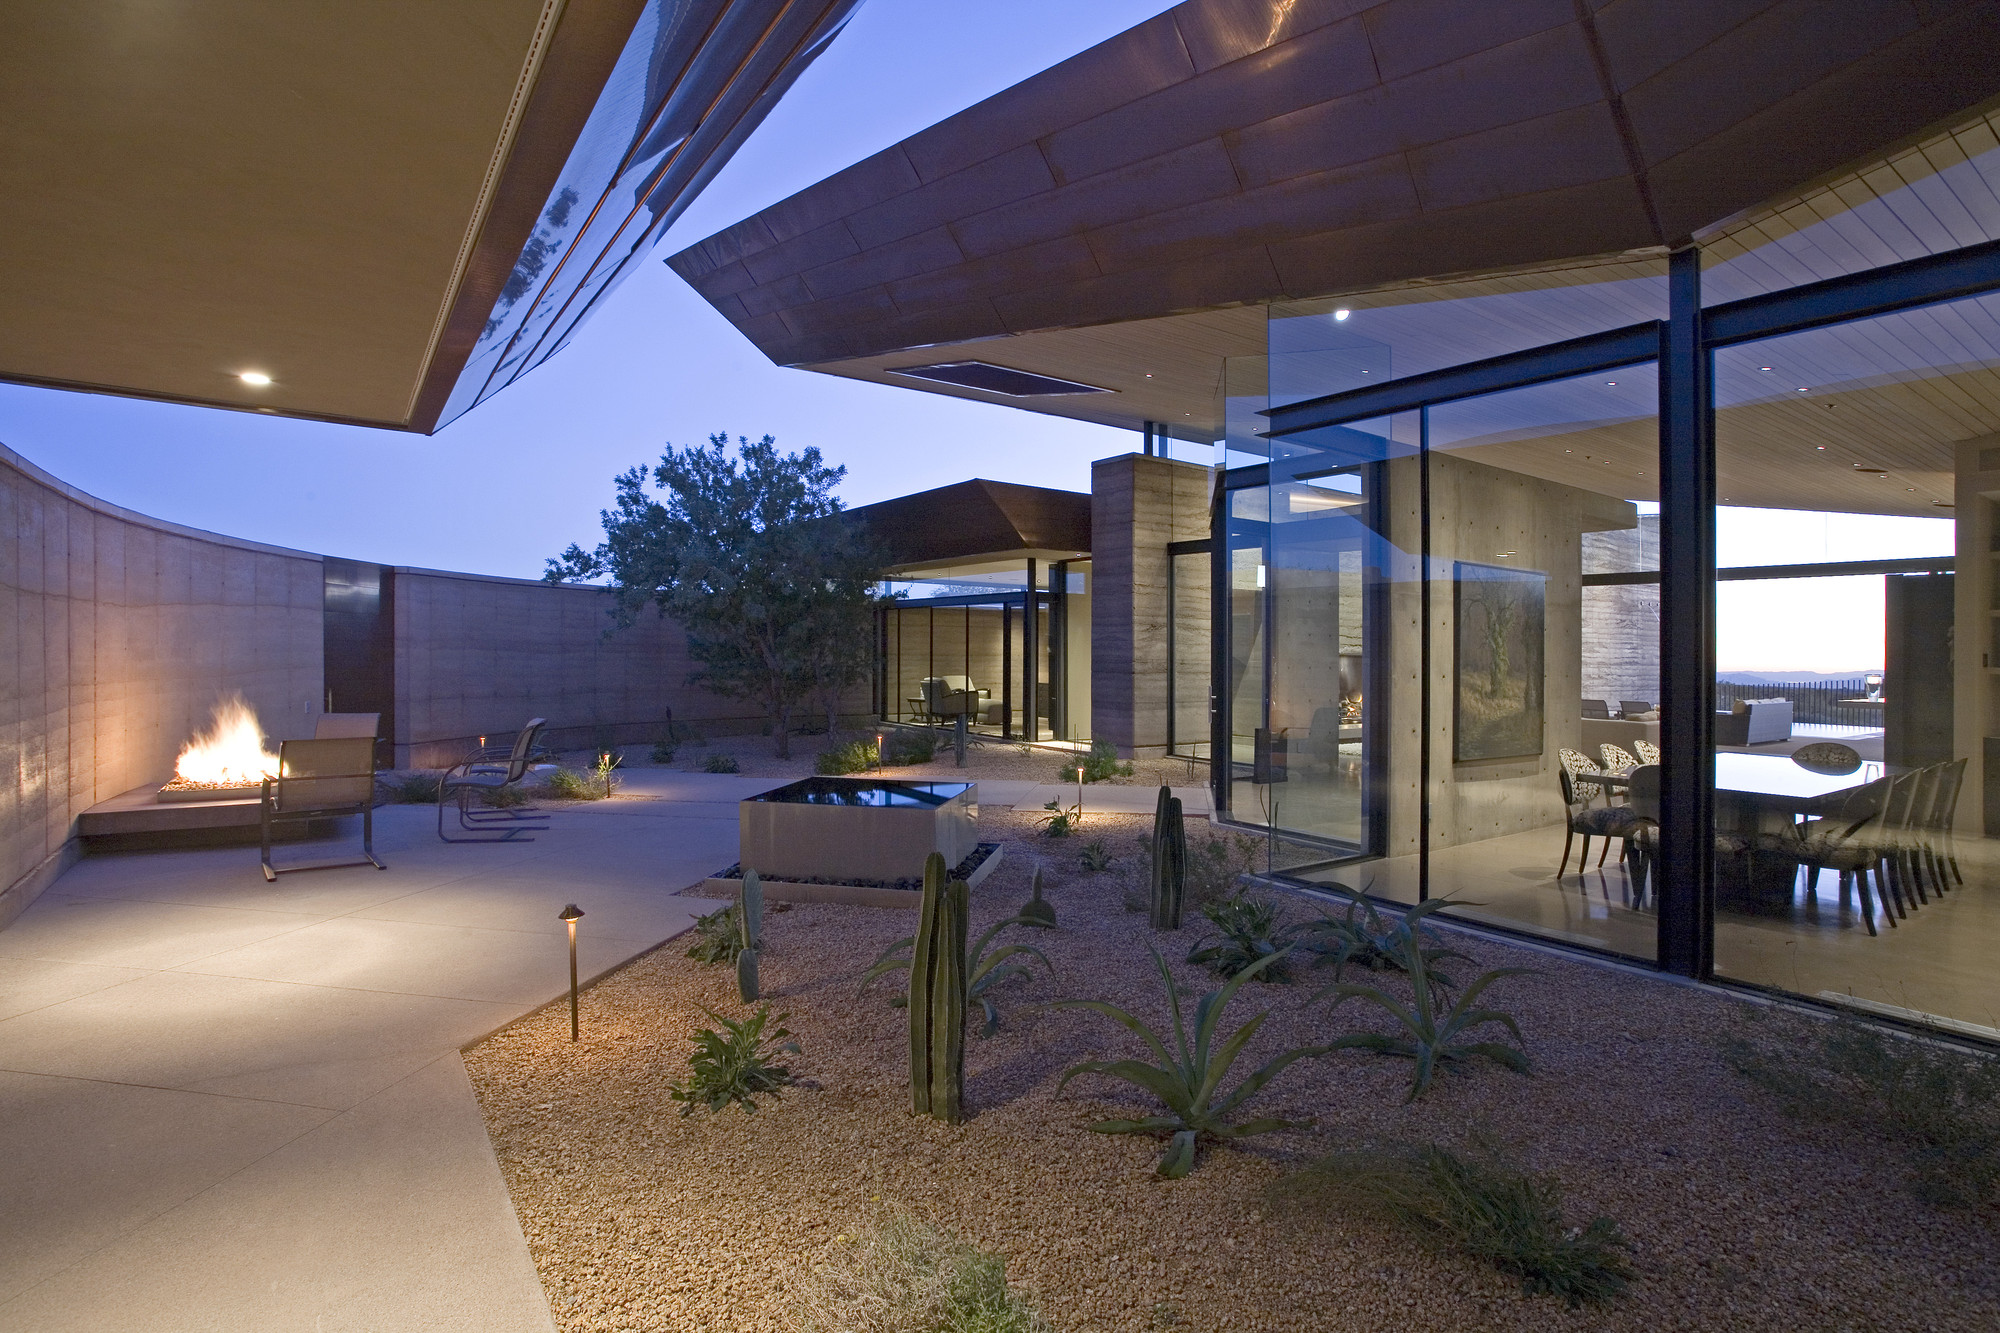 Gallery of desert wing kendle design 17 - Villa decor desert o architecture ...